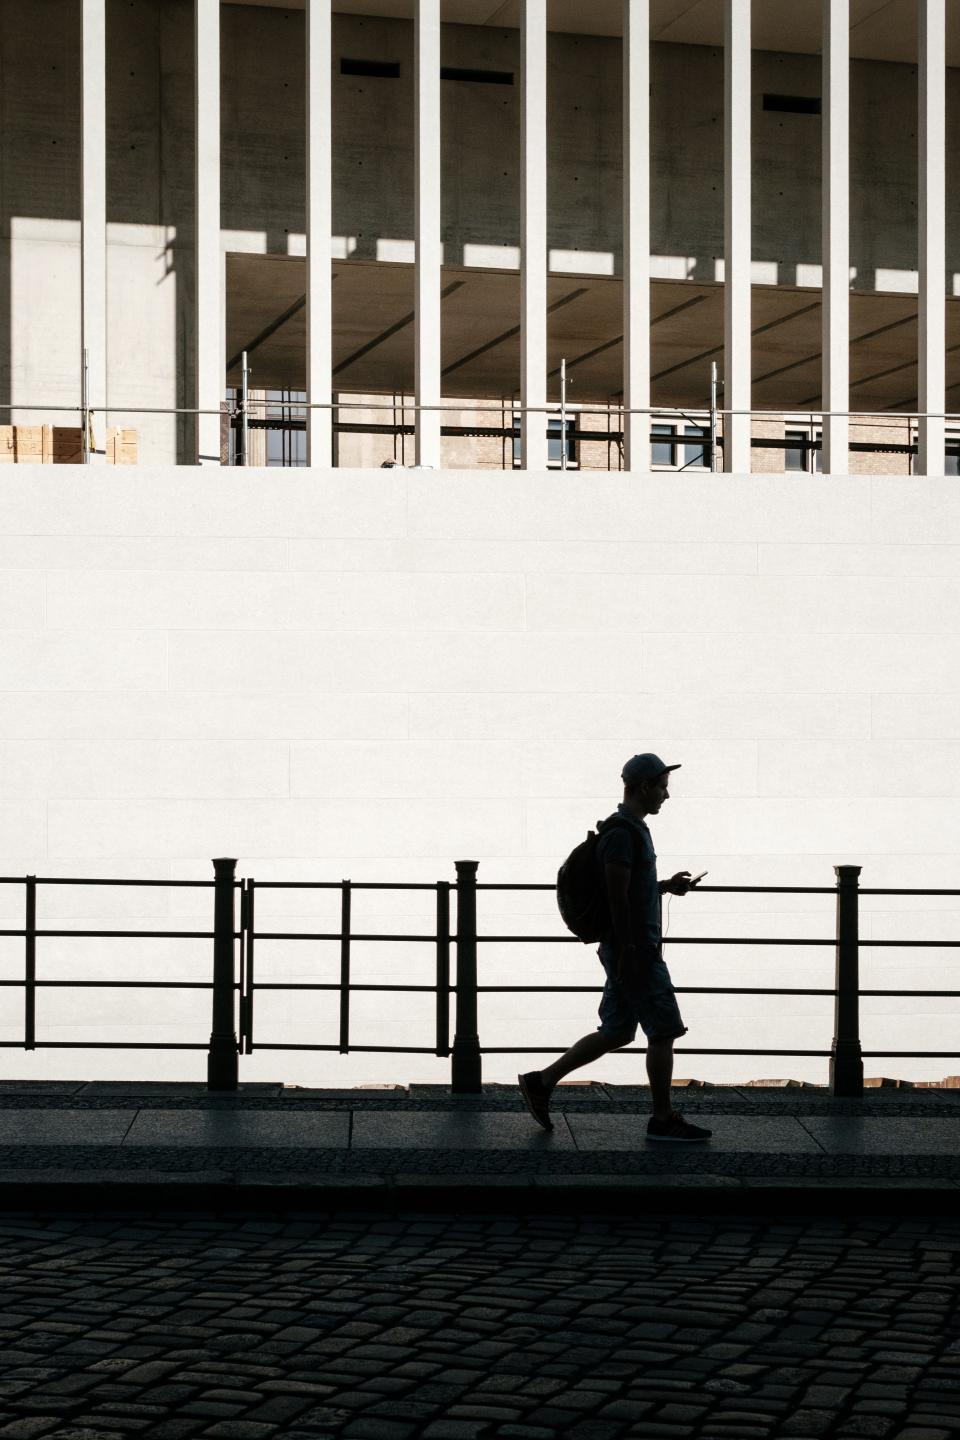 architecture building infrastructure street outdoor people man guy male walking alone silhouette